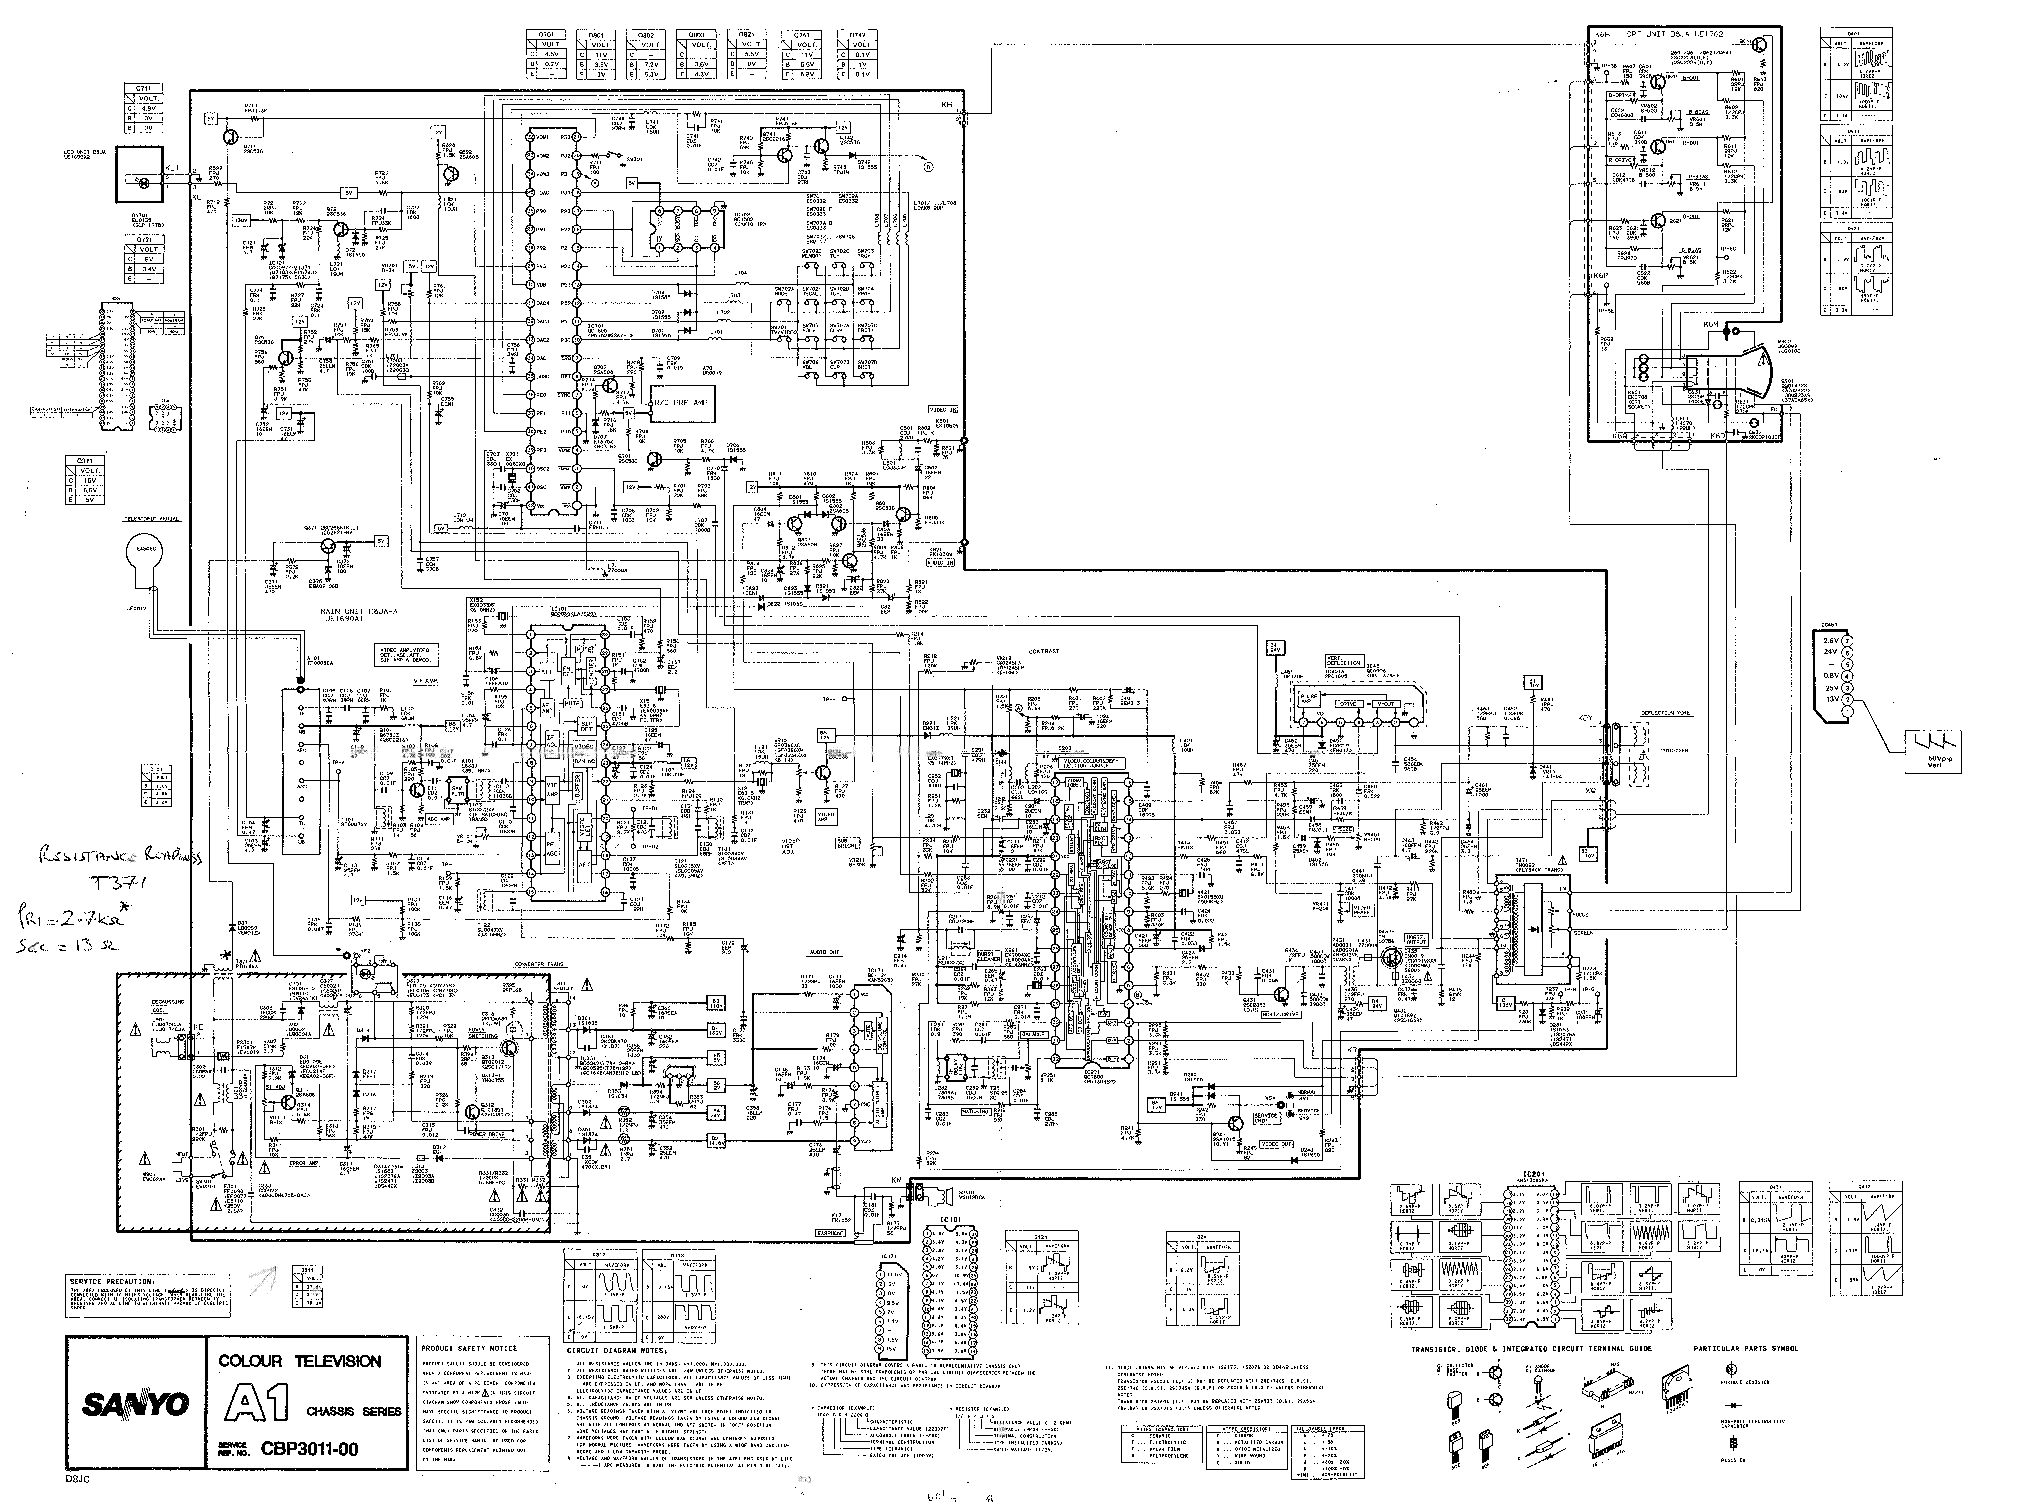 Sanyo Lcd 32k30 Chassis Uh4 B Service Manual Download Schematics Eeprom Repair Info For